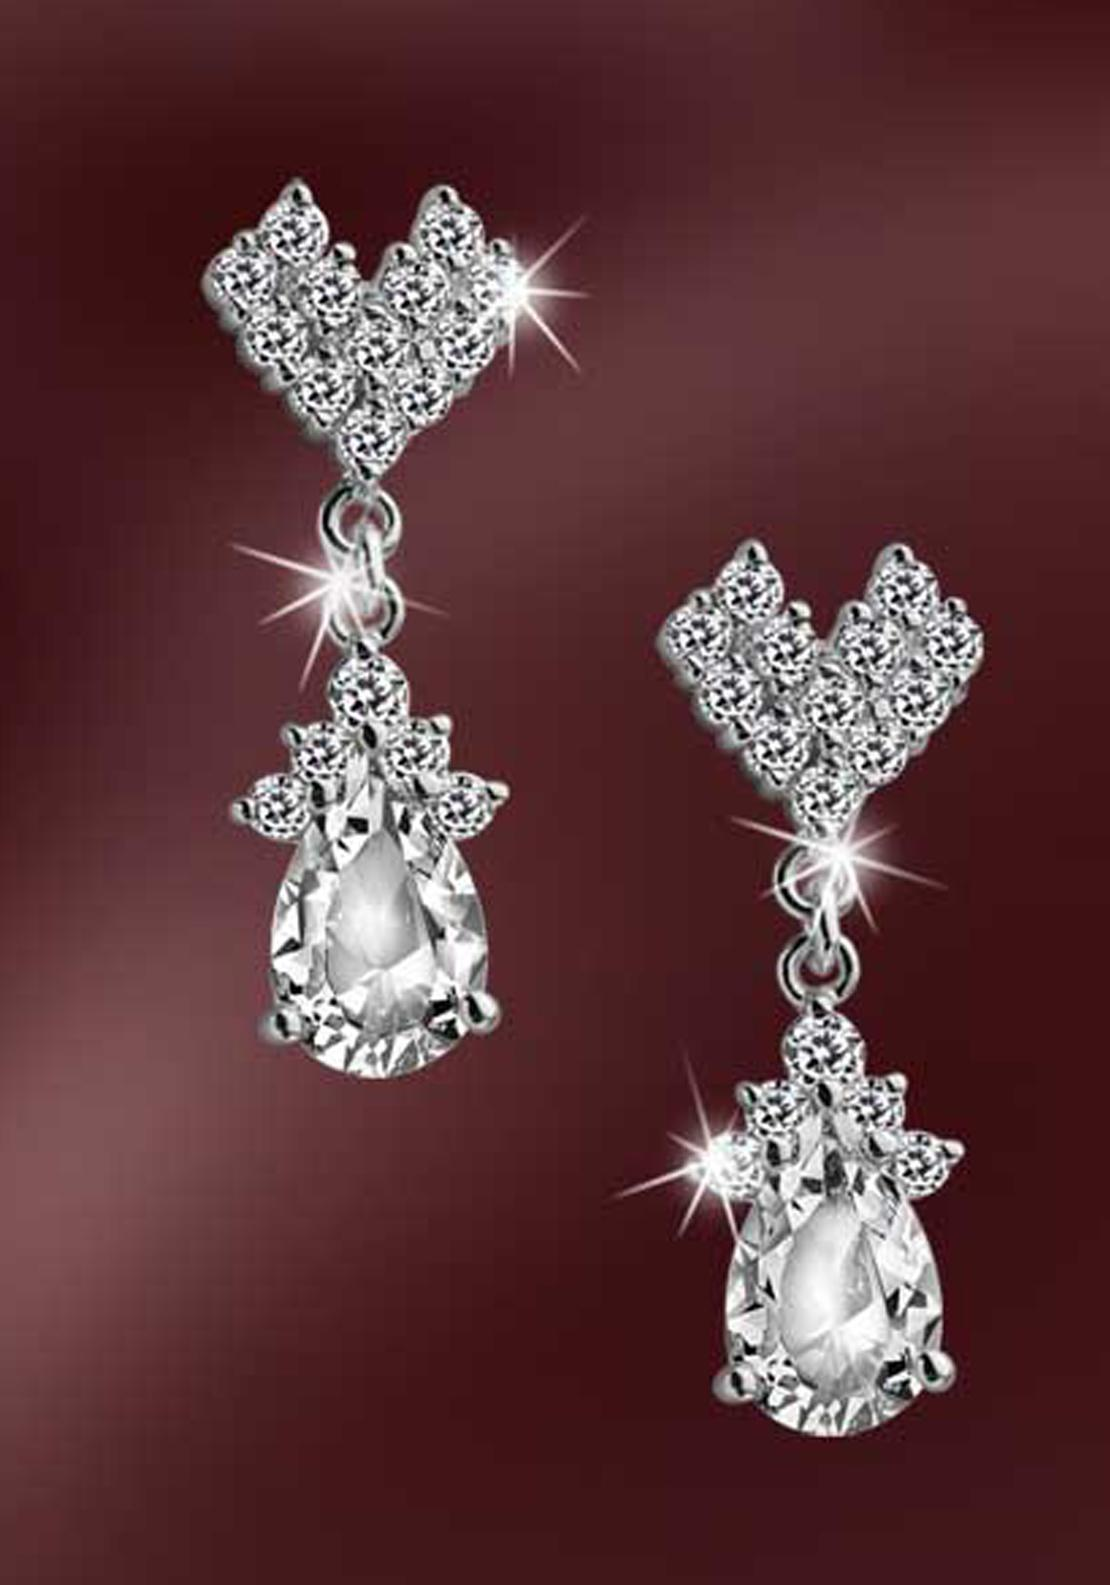 Newbridge Vintage Earrings, Silver / Clear